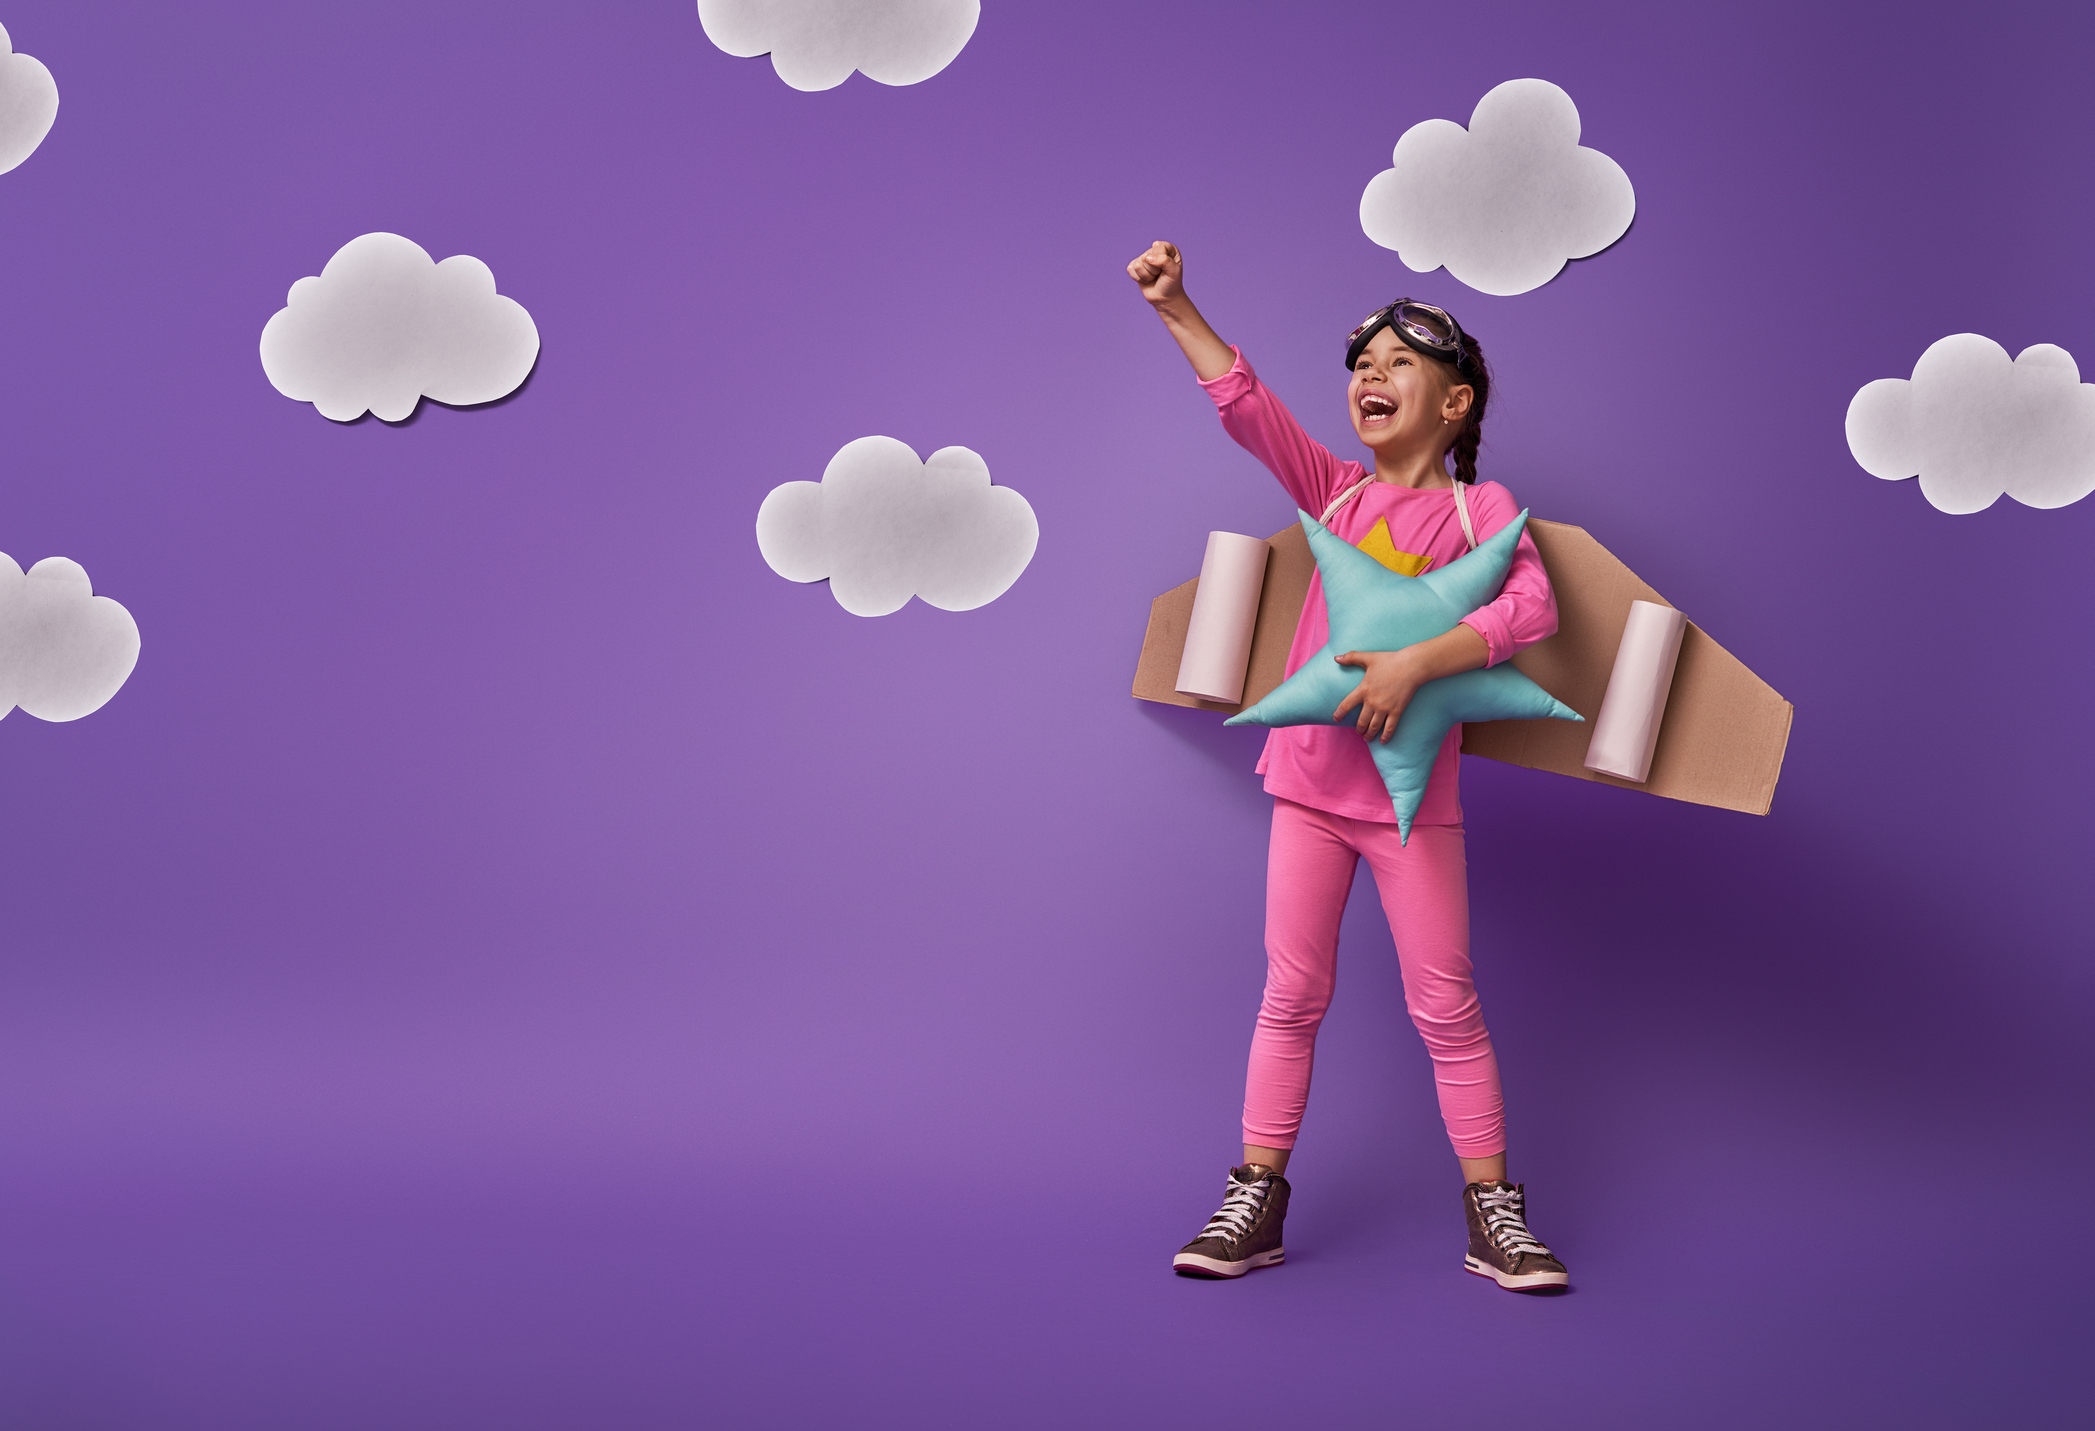 Little child girl in an astronaut costume is playing and dreaming of becoming a spaceman. Portrait of funny kid on a background of ultraviolet wall with white clouds.